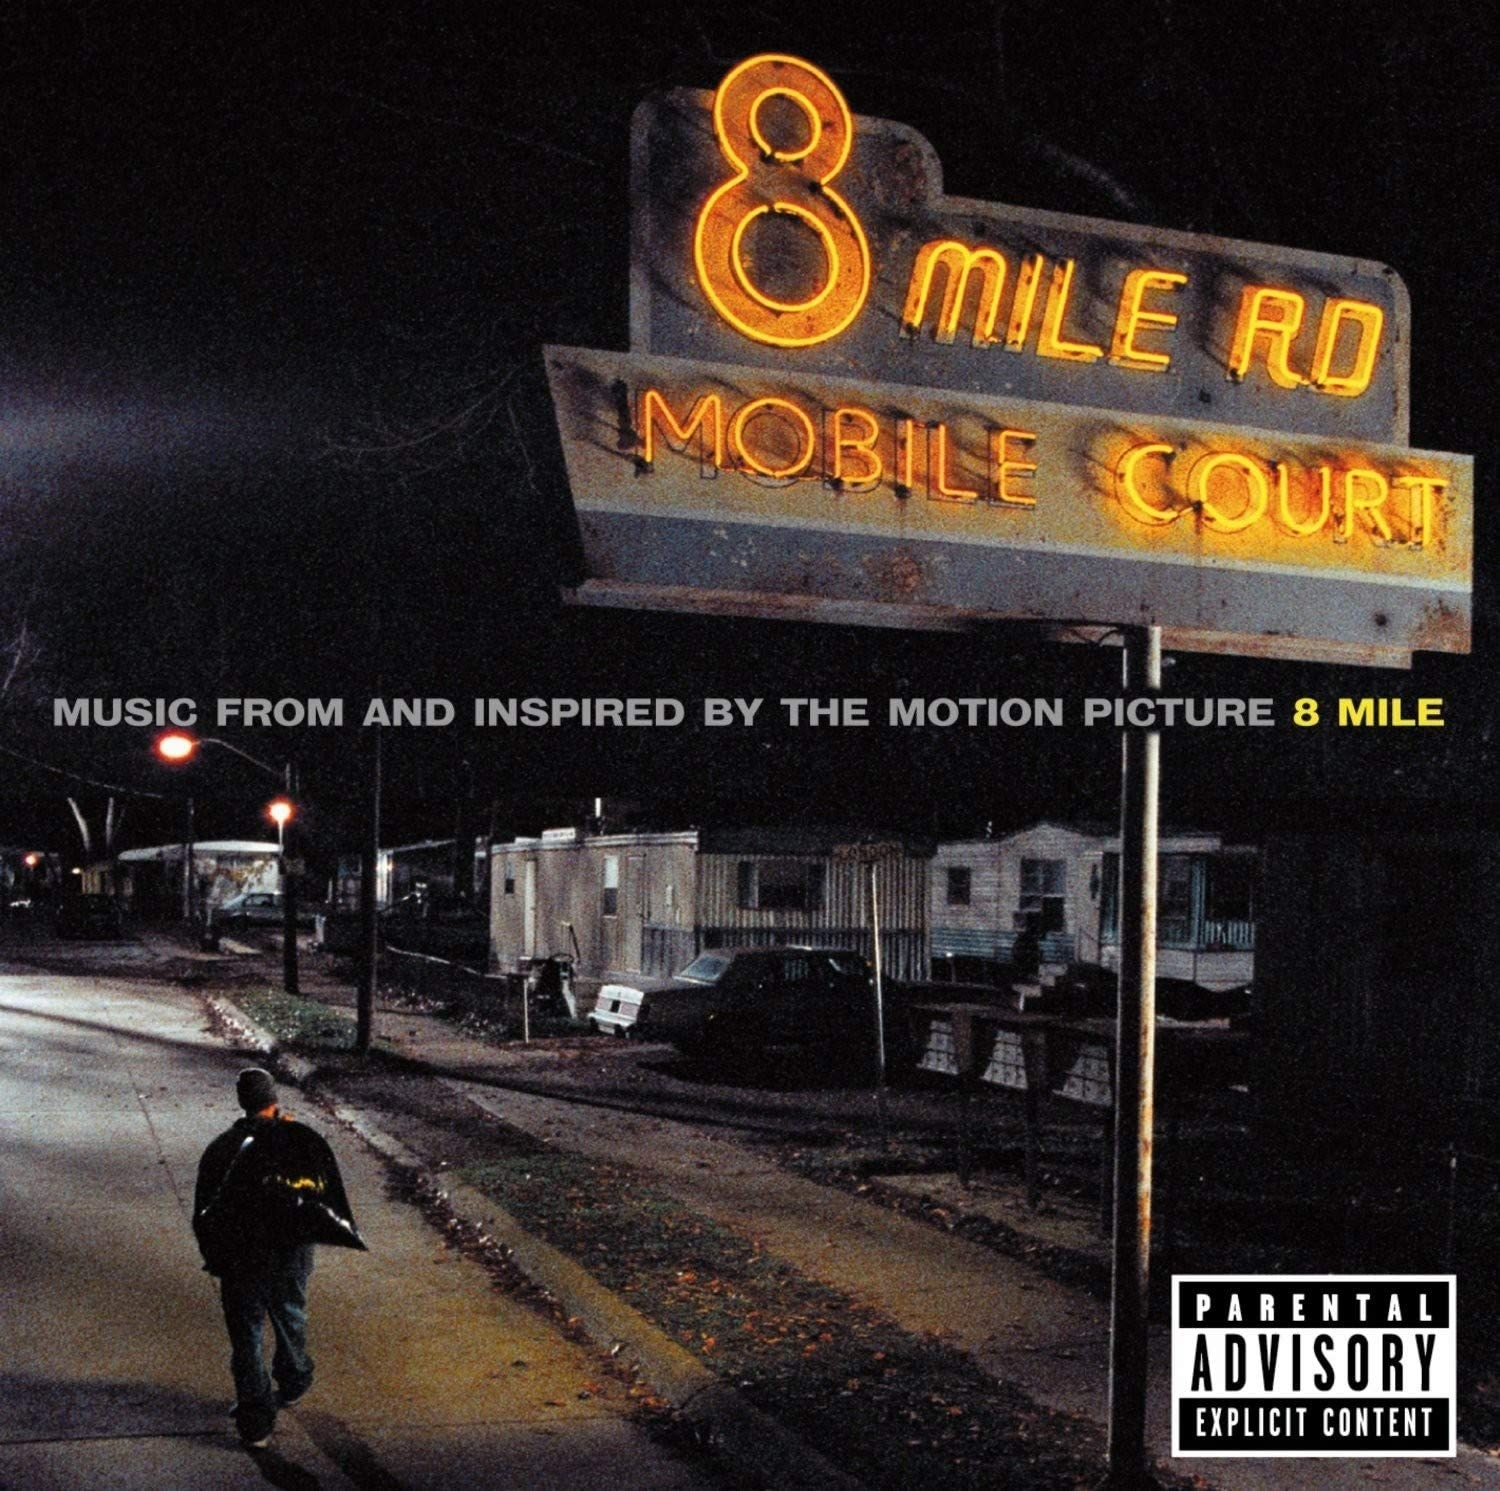 """album cover of 8 Mile showing Eminem walking down a road passing under a sign that reads, """"8 Mile Rd Mobile Court"""""""